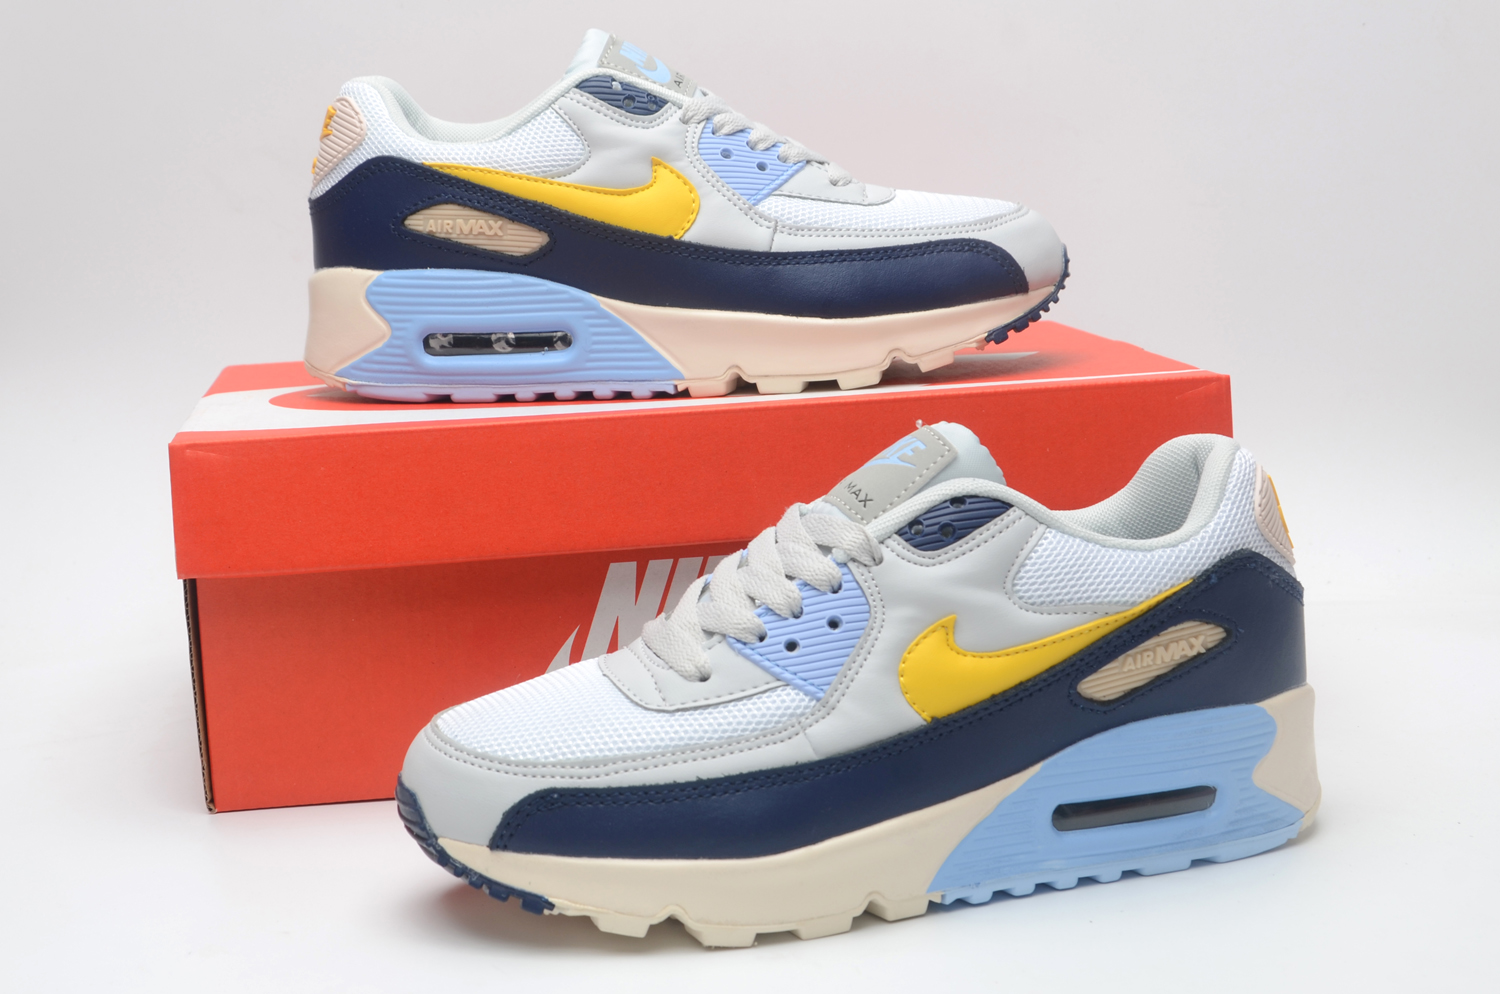 Women's Running weapon Air Max 90 Shoes 033